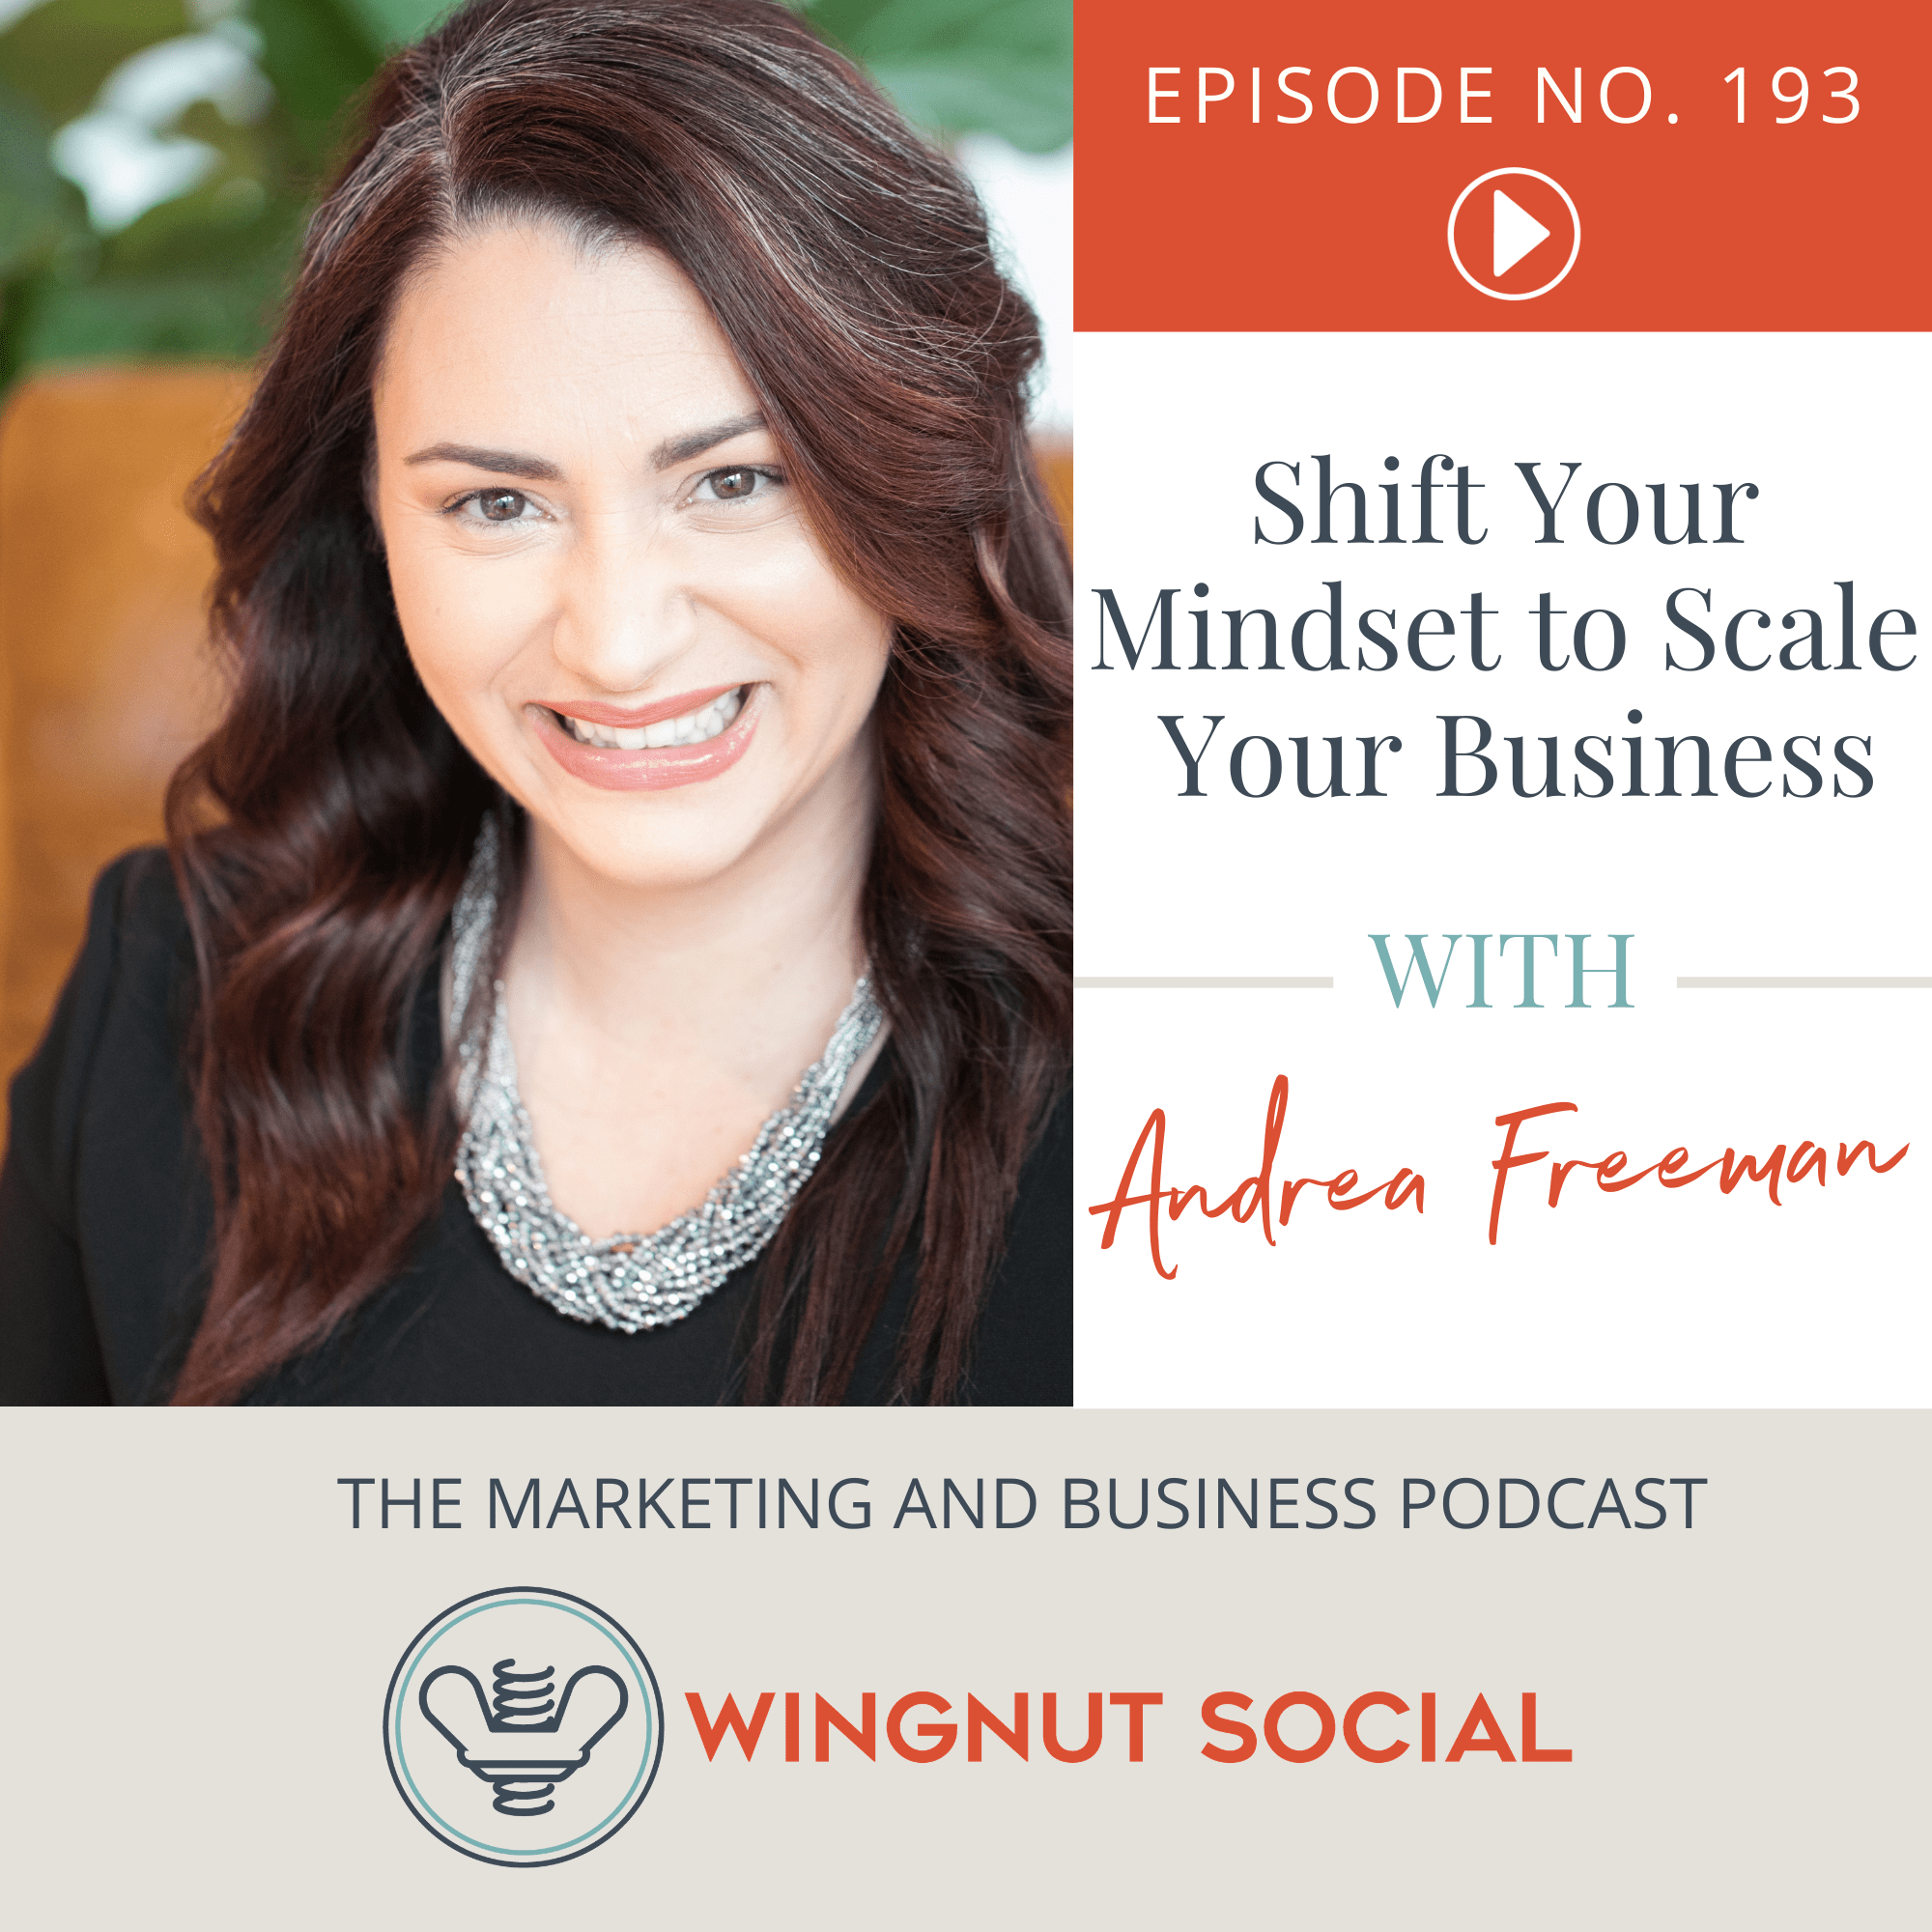 Andrea Freeman's Method: Shift Your Mindset to Scale Your Business - Episode 193